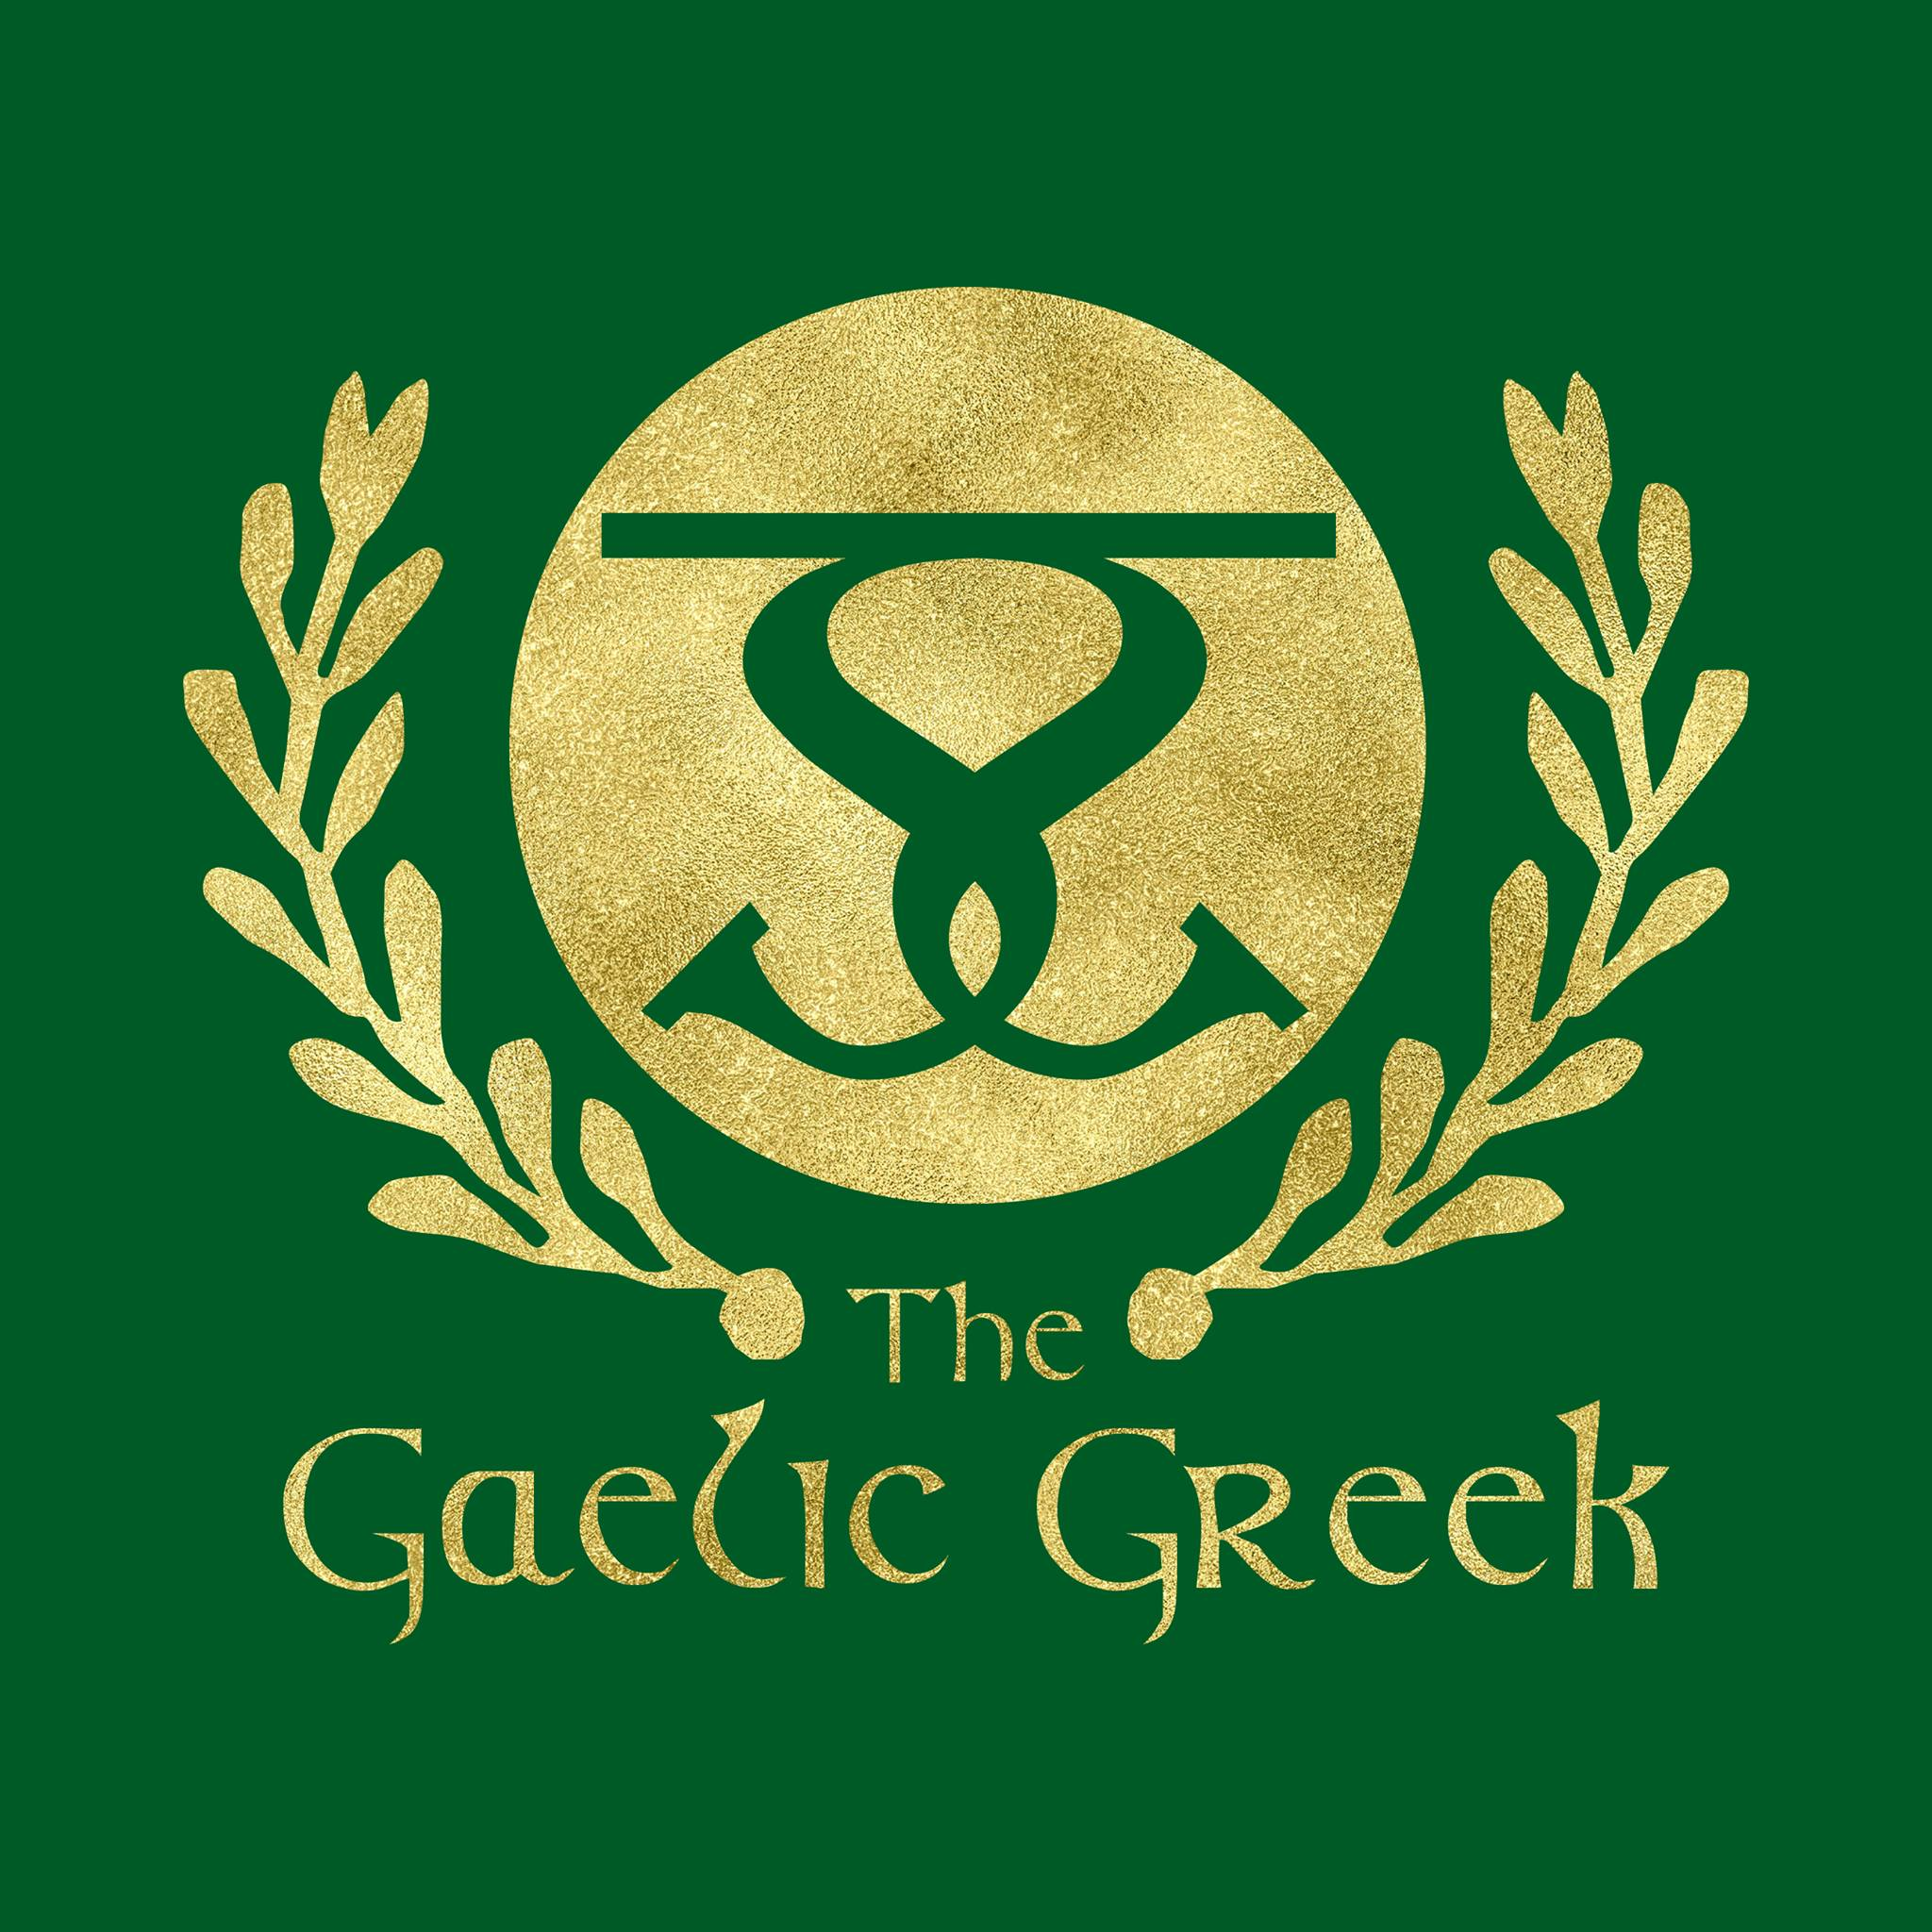 The Gaelic Greek logo